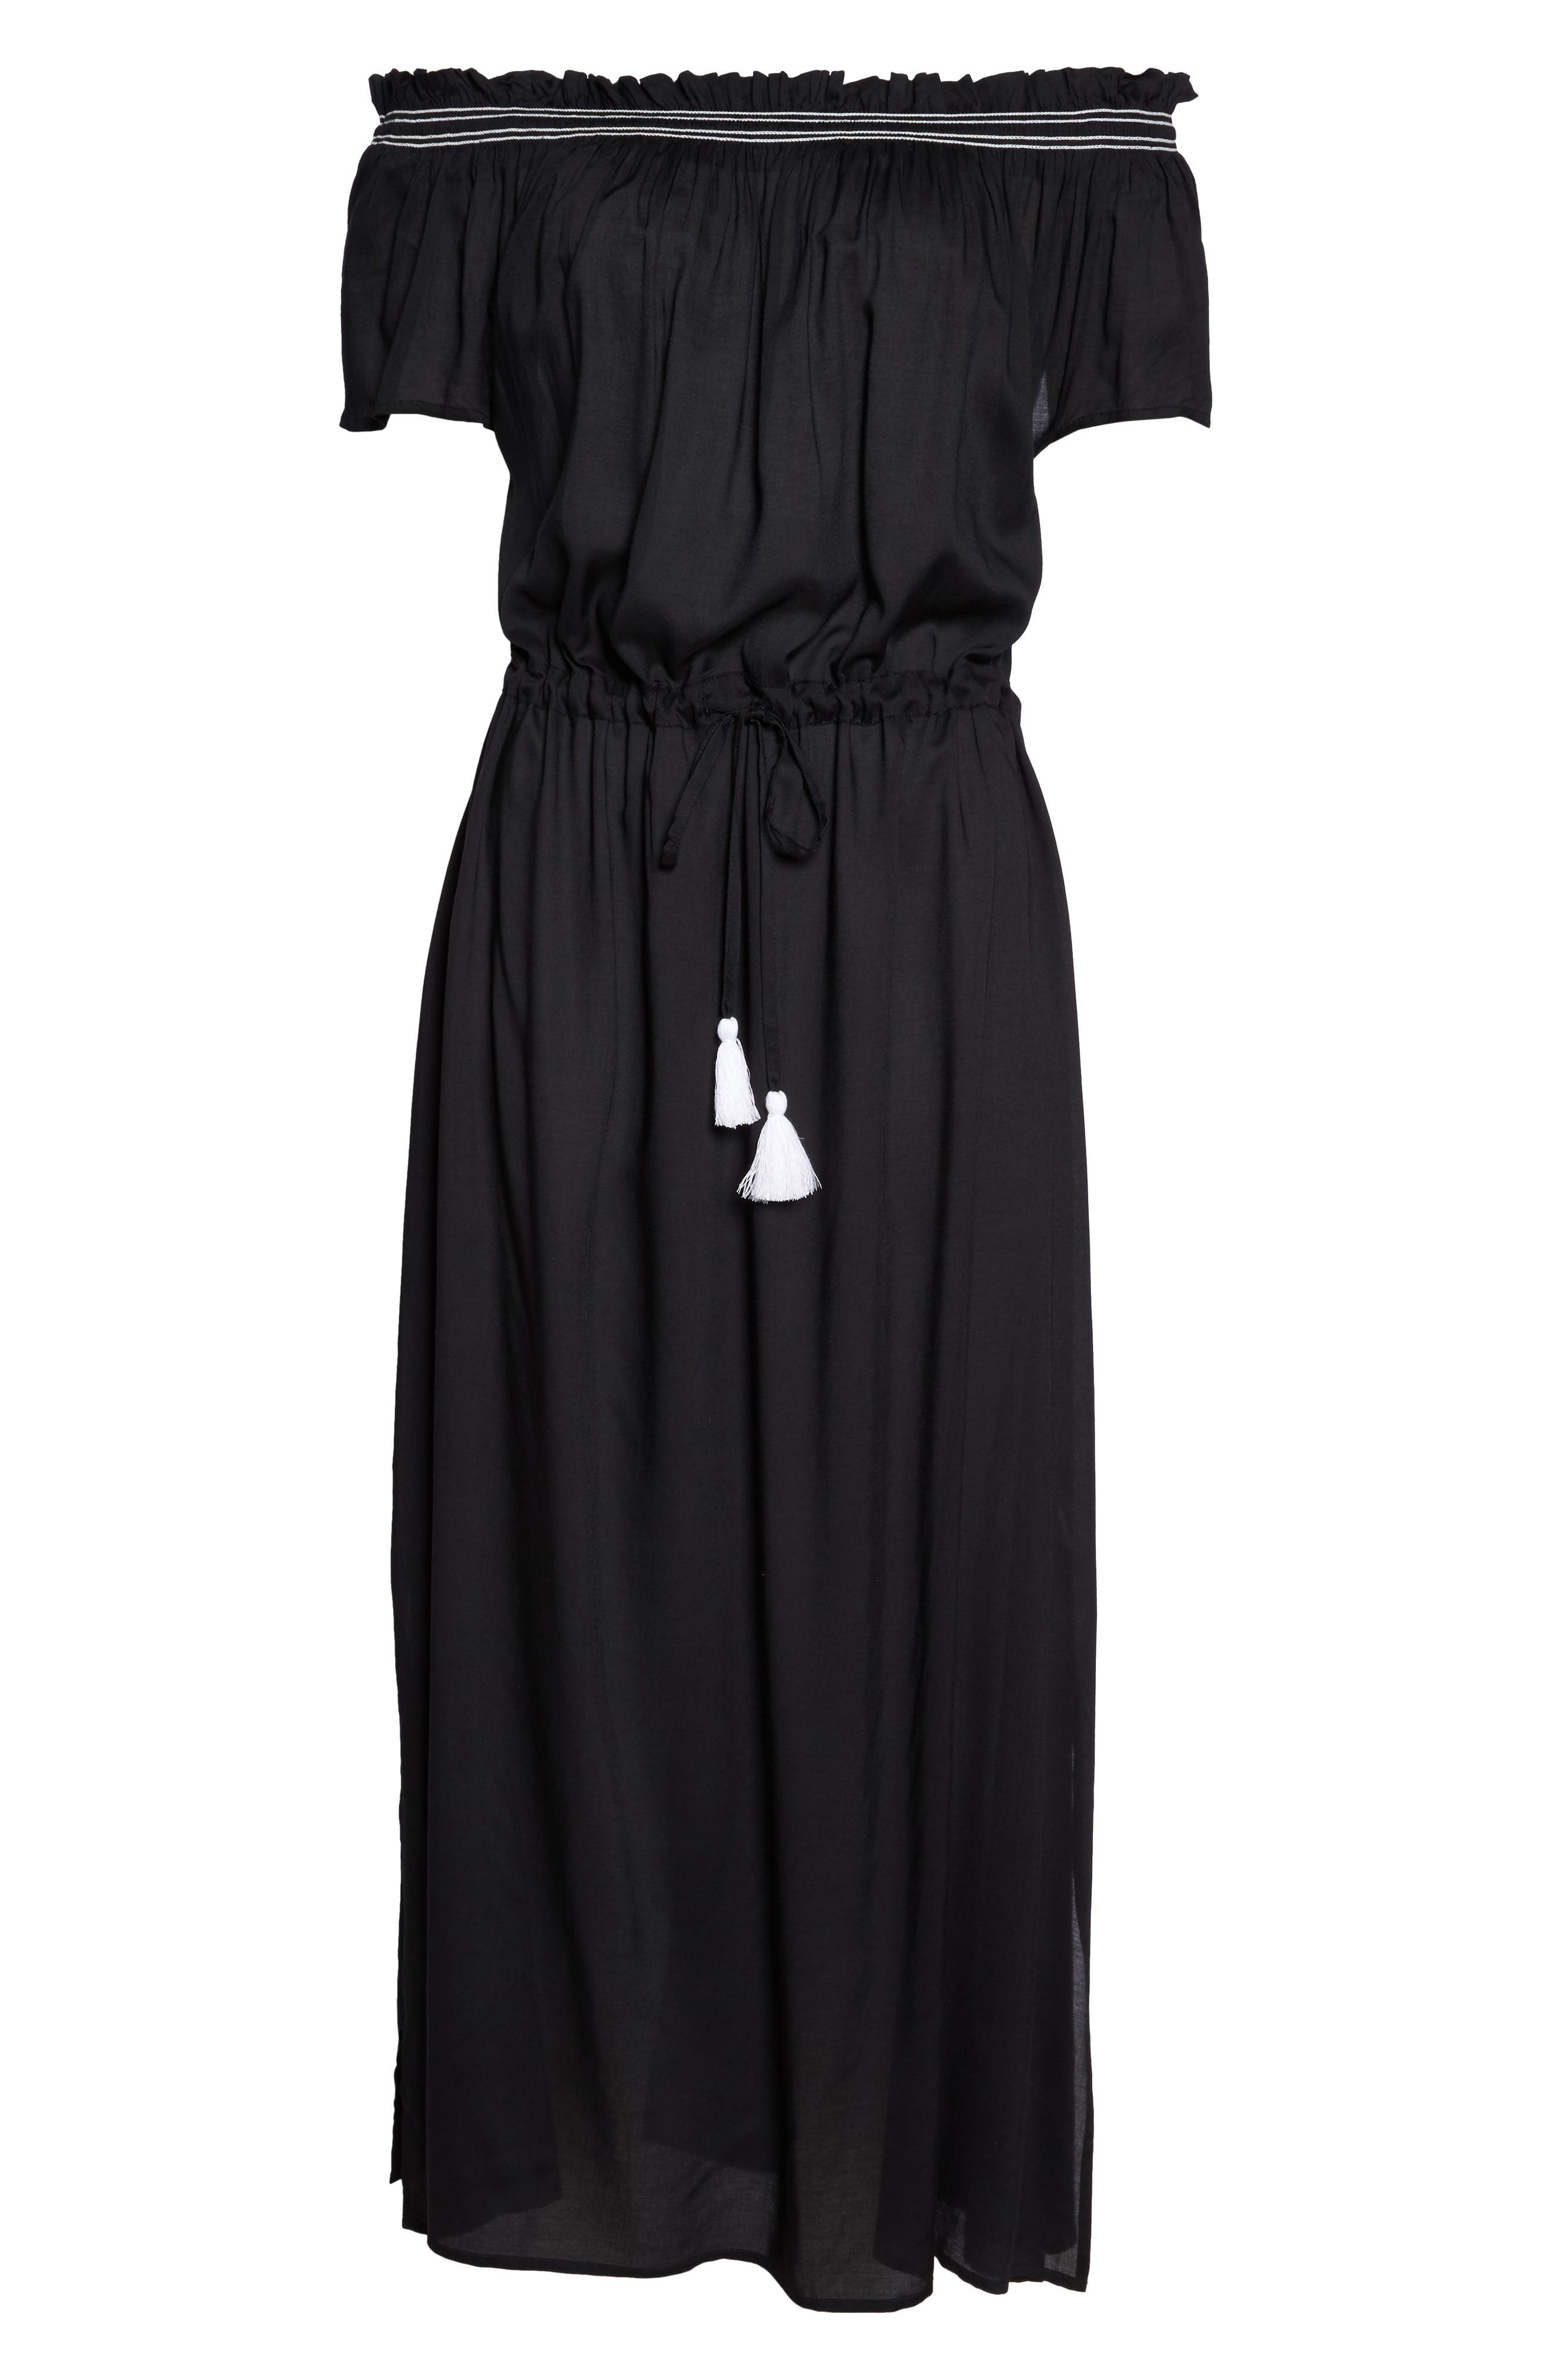 Off the Shoulder Cover-Up Dress,                             Alternate thumbnail 6, color,                             Black